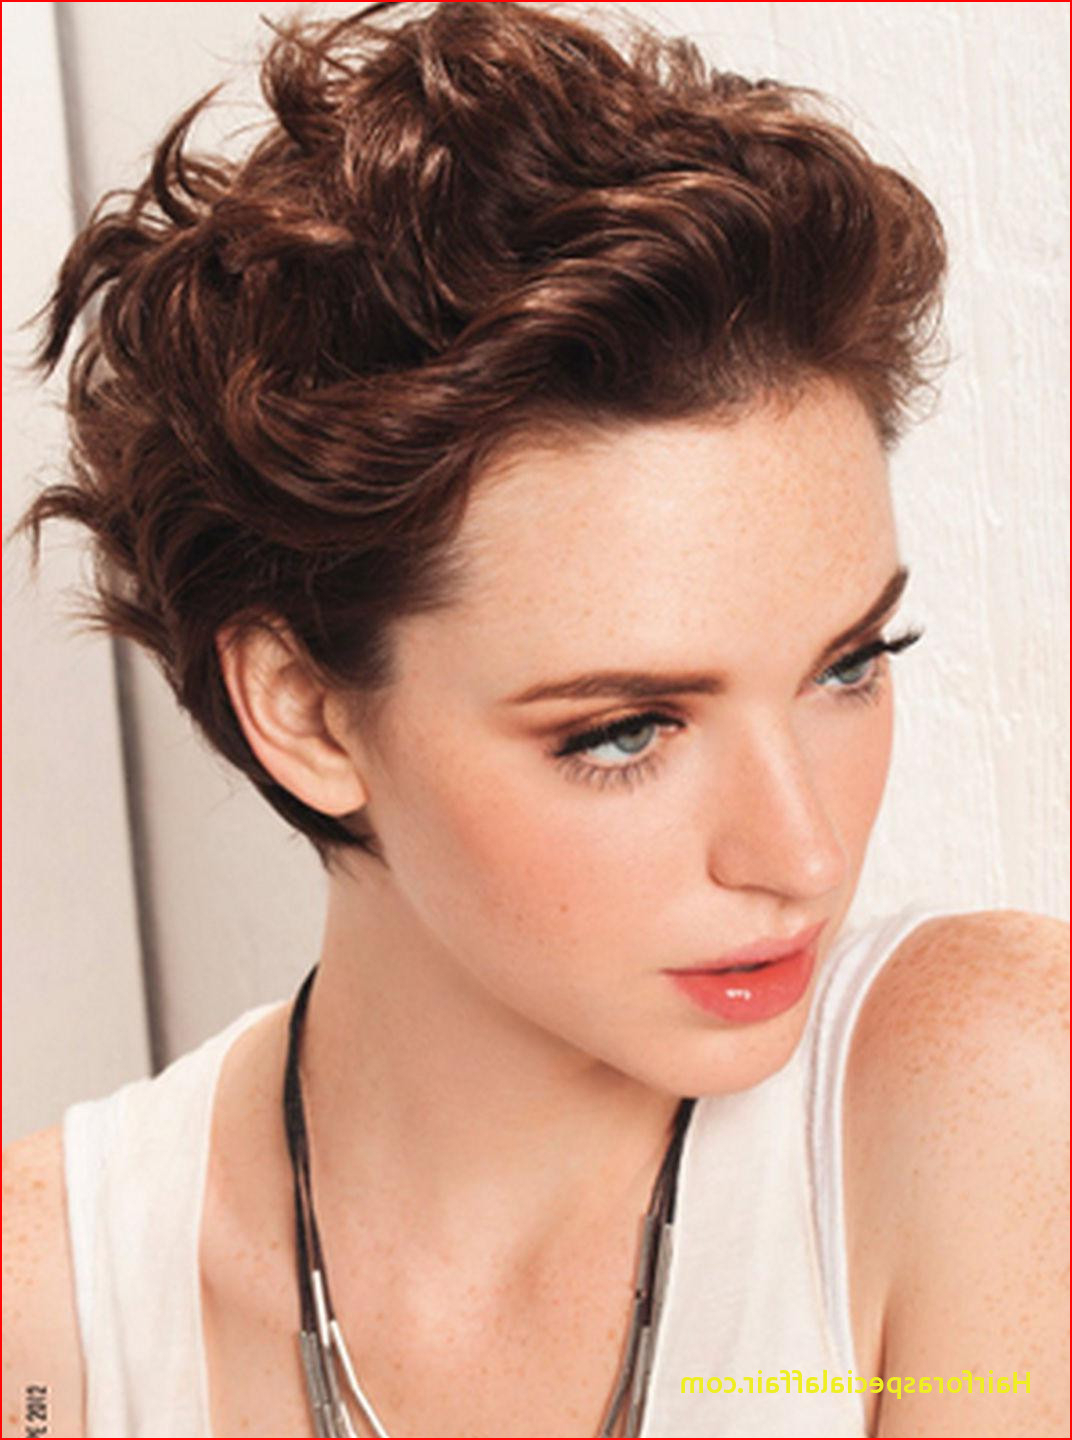 Short Haircuts For Women With Thick Wavy Hair Cute Short Haircuts Inside Short Hairsyles For Thick Wavy Hair (View 7 of 25)